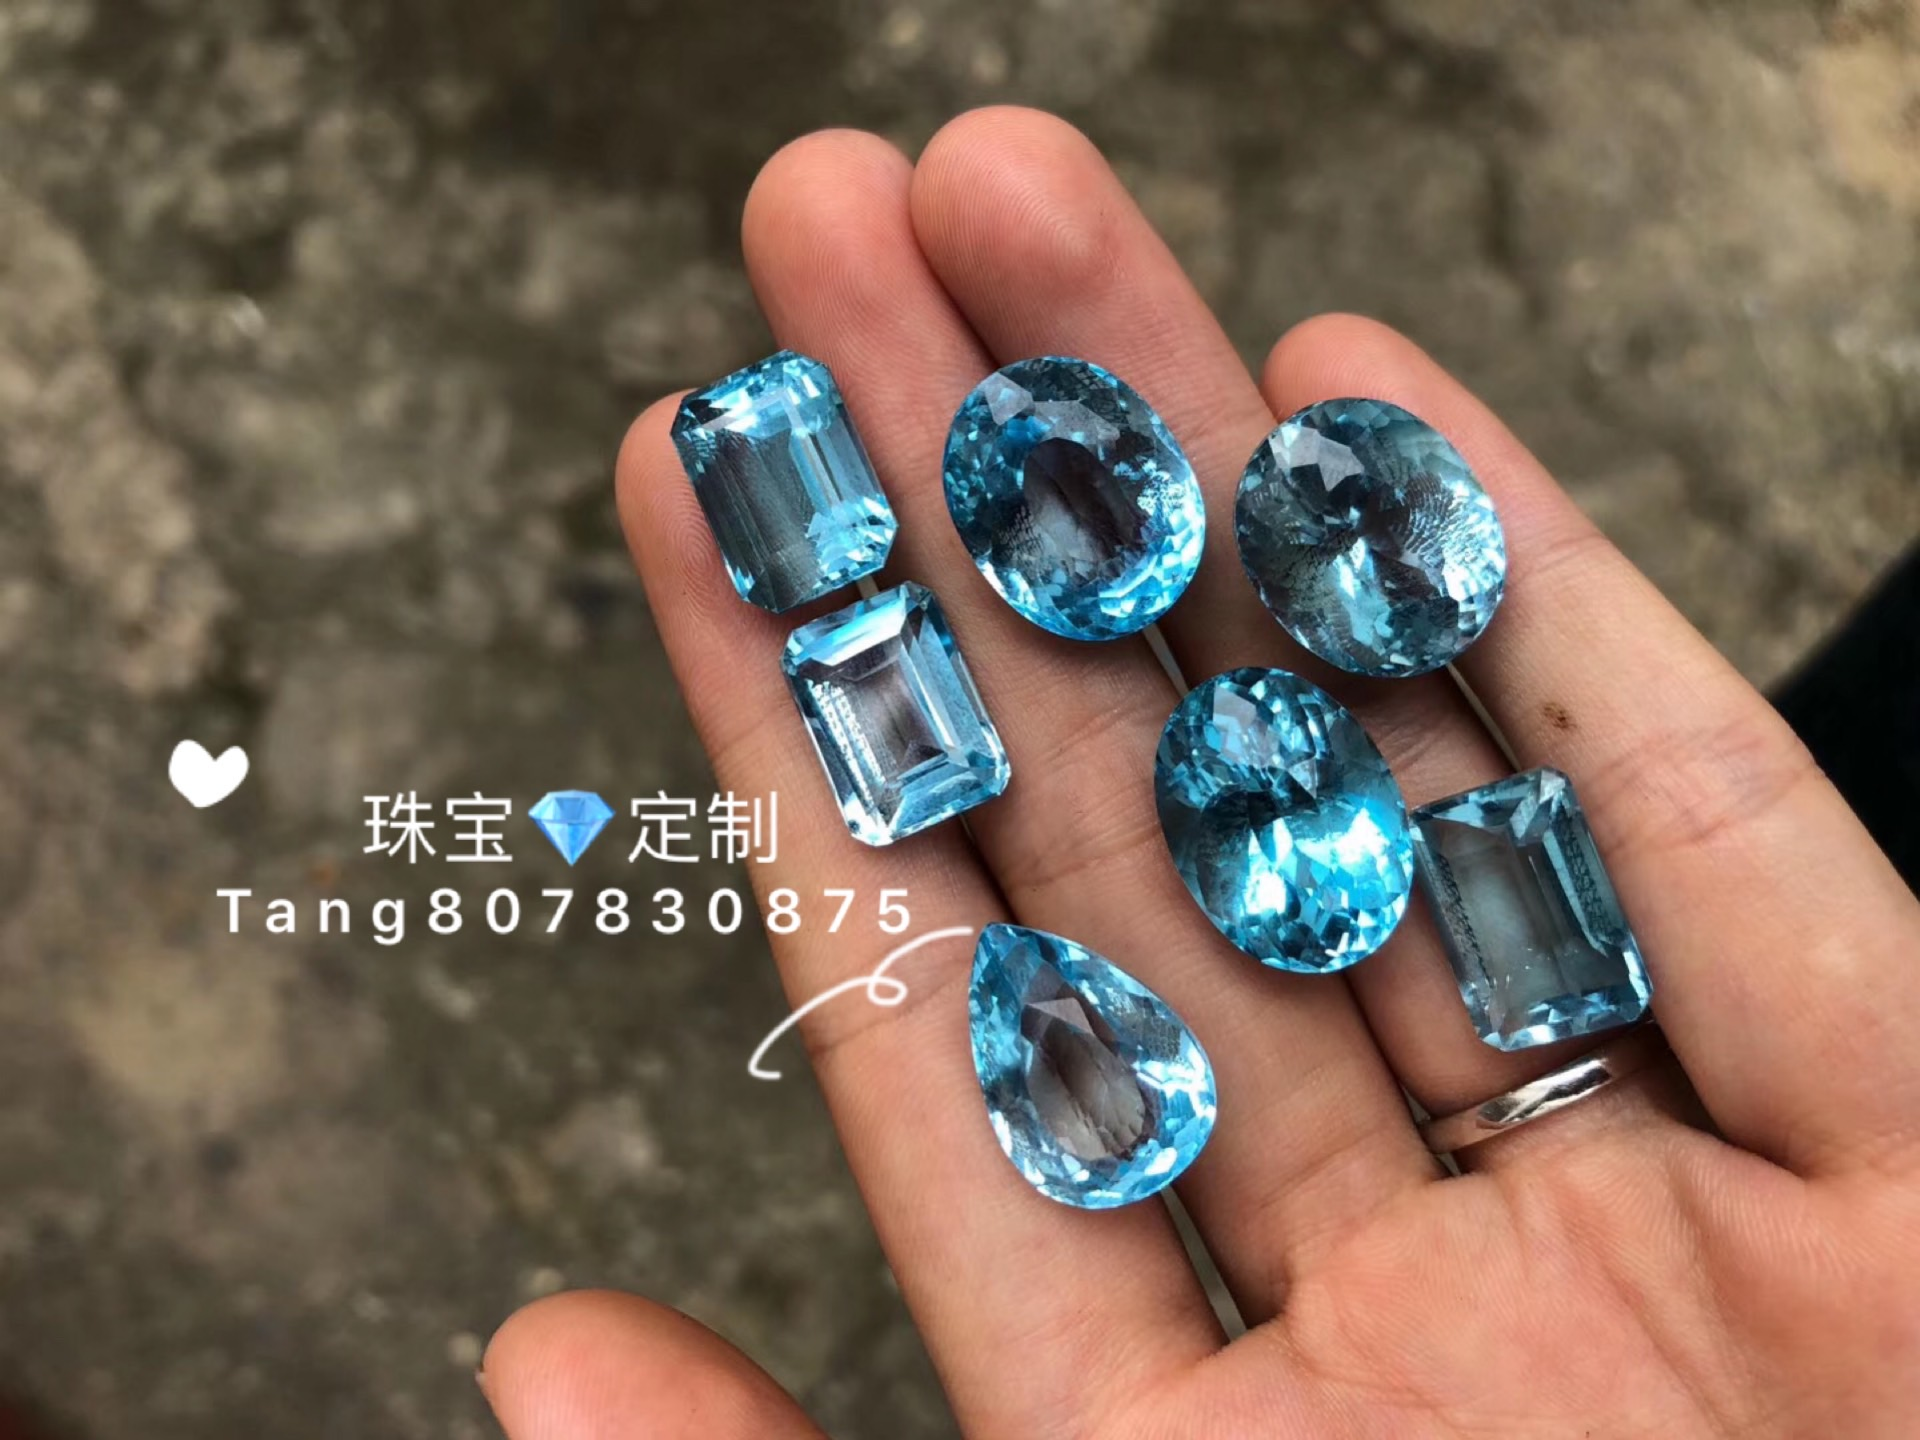 All kinds of gemstones, bare stones, inlay fee links, consult customer service before shooting